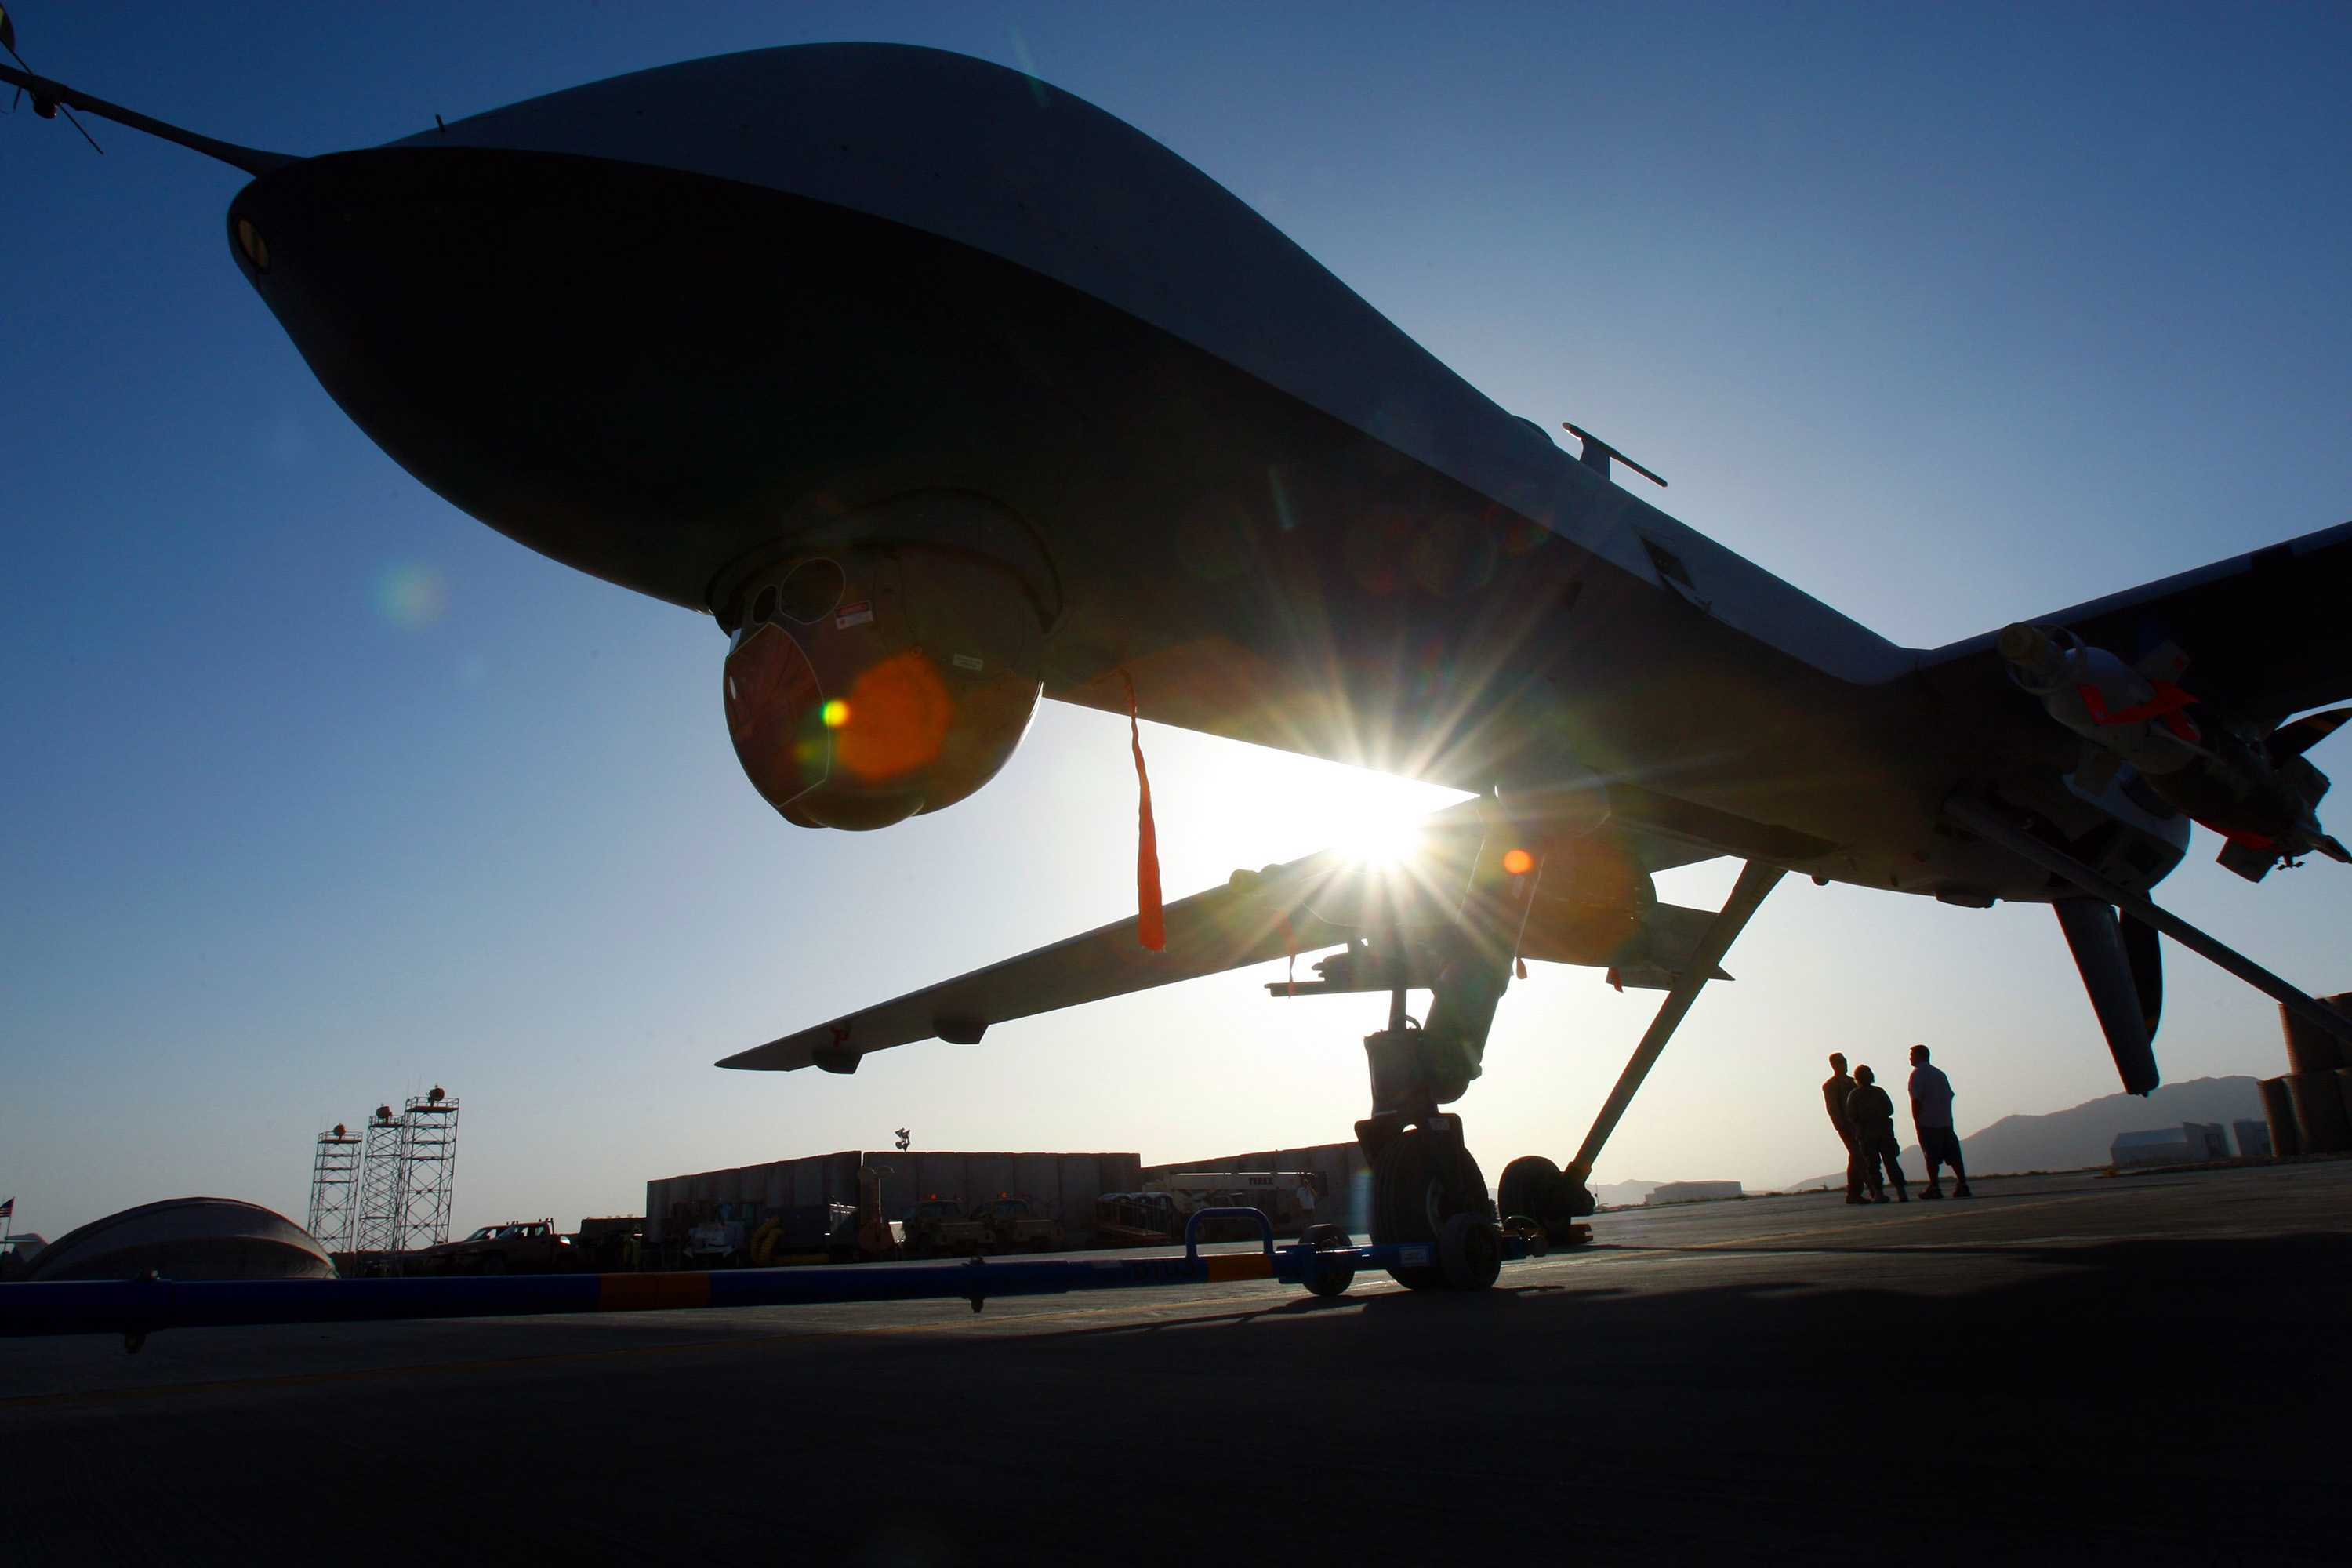 A Predator drone in Kandahar, Afghanistan. A growing fleet of U.S. spy planes and drones in Asia, Africa, the Middle East and elsewhere alllows Air Force analysts to gather intelligence without ground combat troops. (Rick Loomis/Los Angeles Times/TNS)